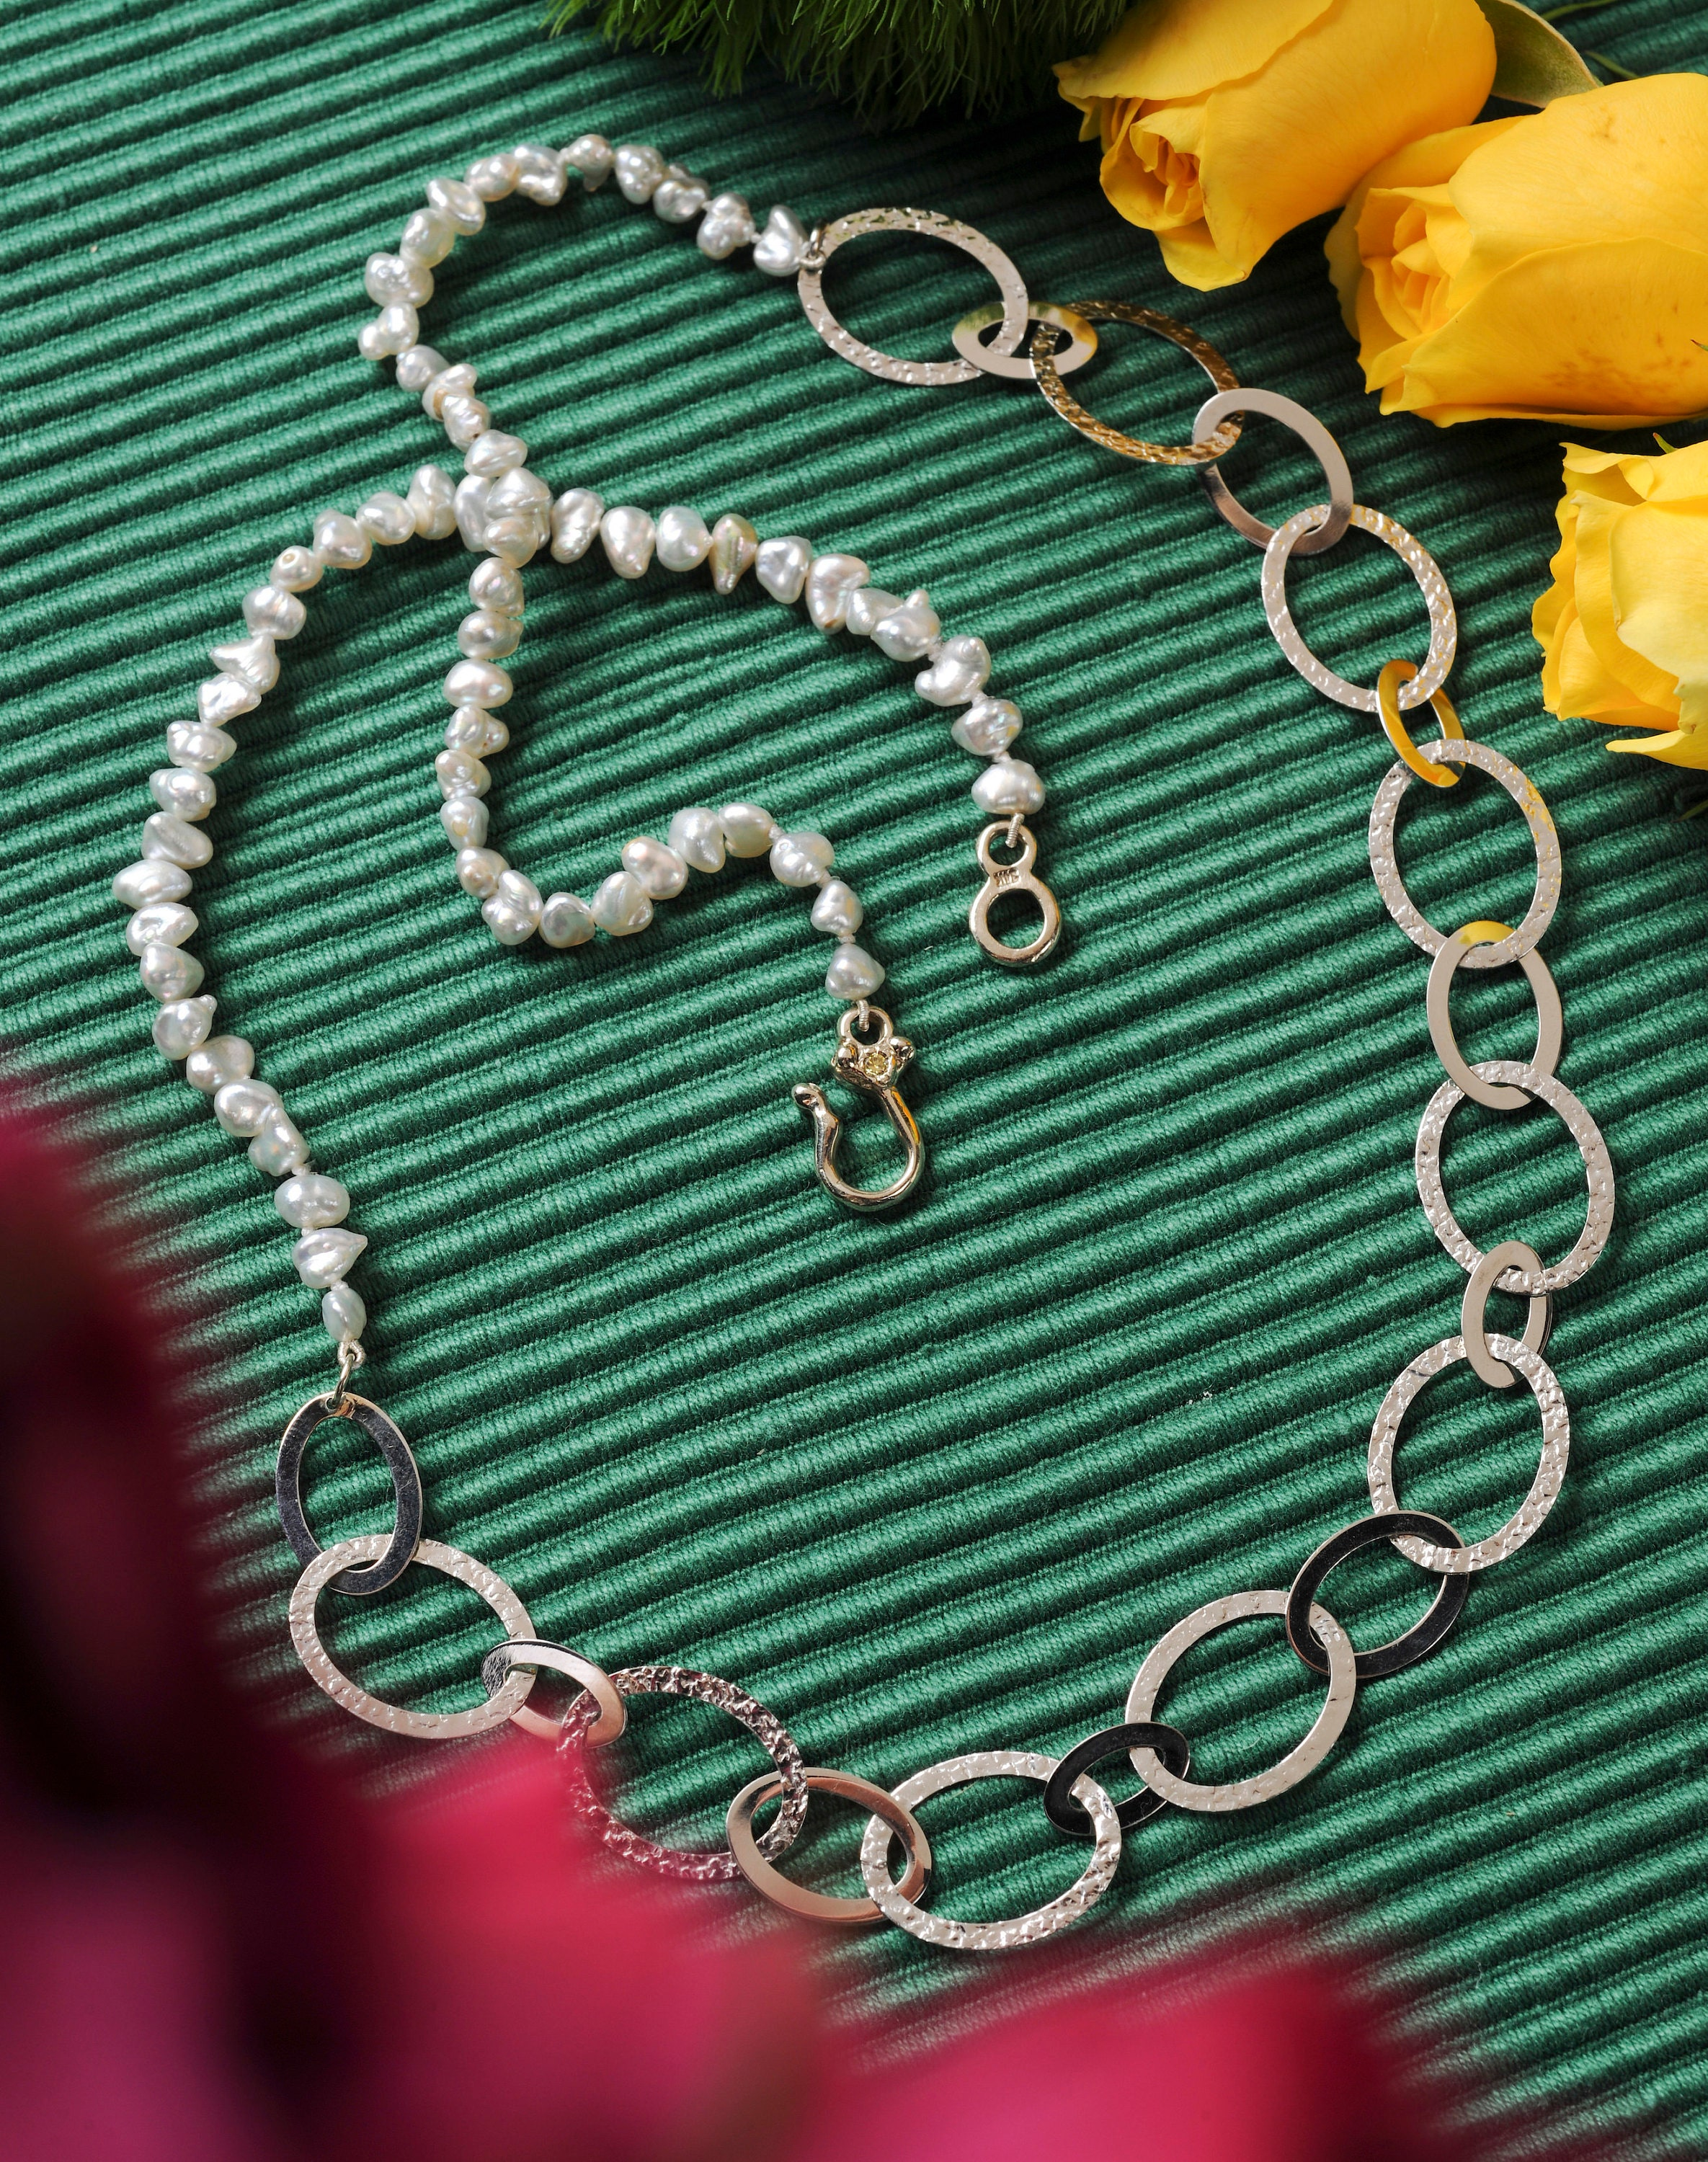 Pearl and 14k White Gold Necklace, Keshi Pearls, Handmade 14k white gold and diamond clasp